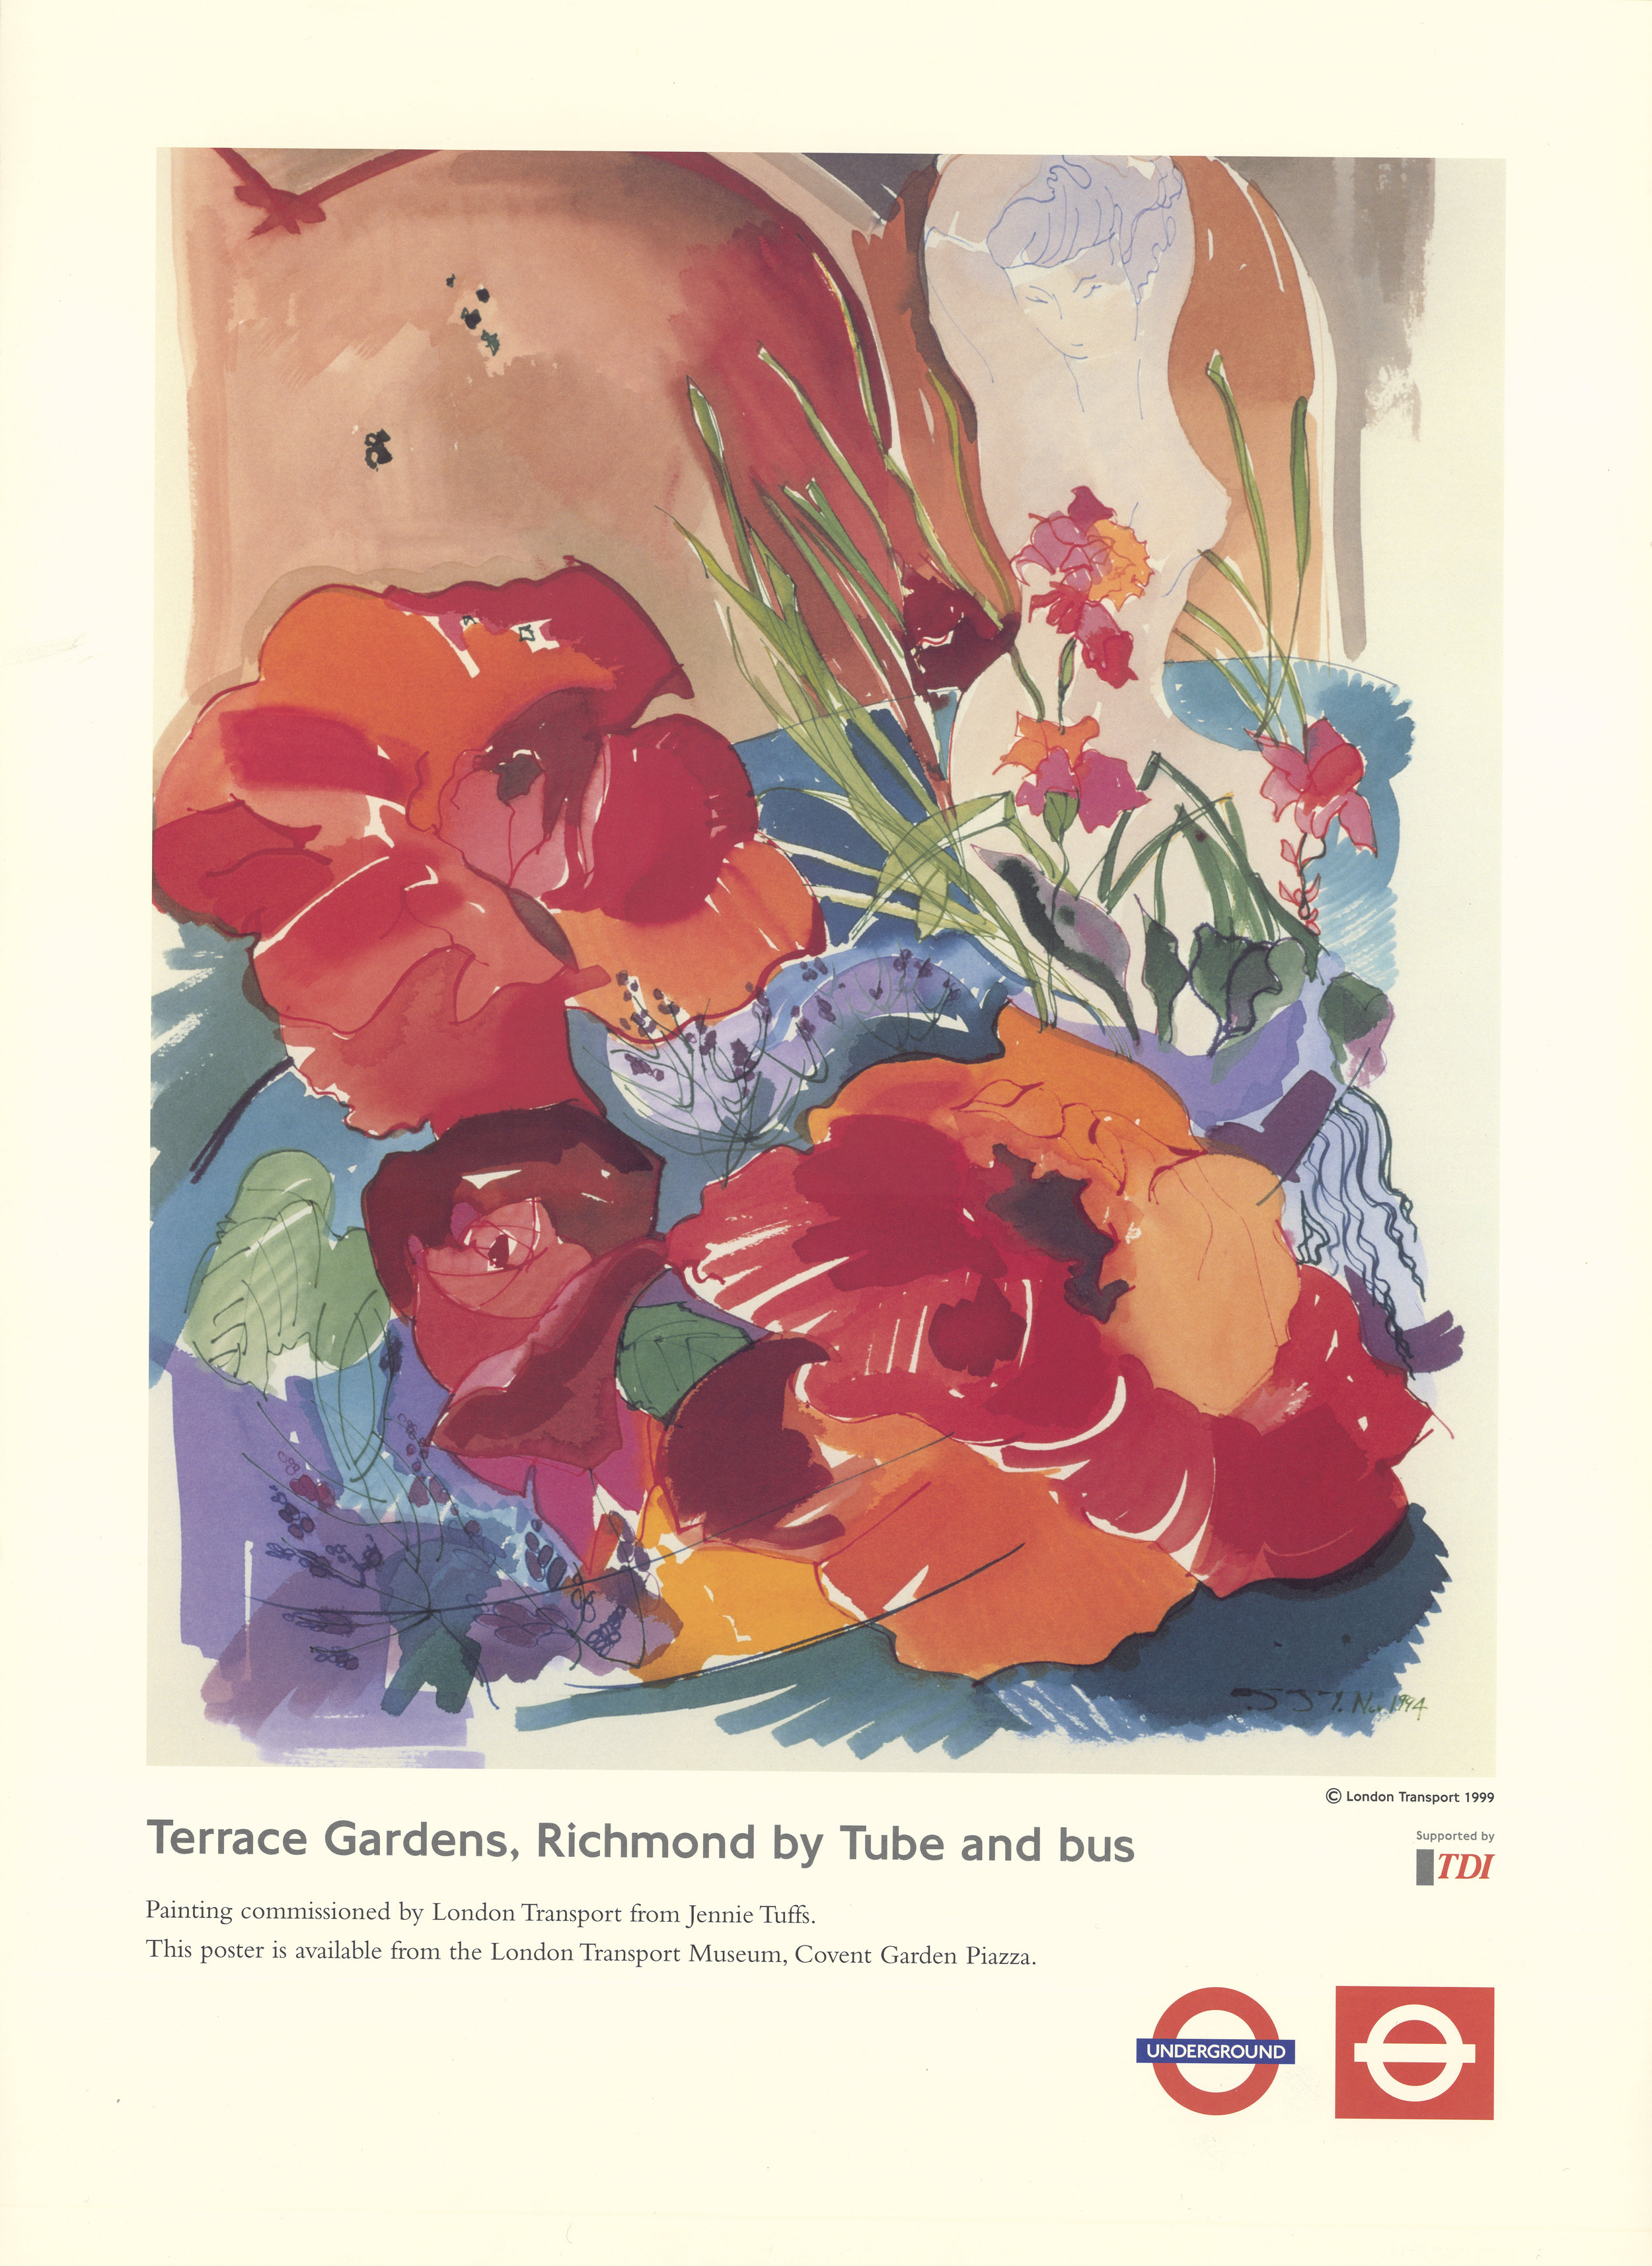 Terrace Gardens, Richmond by Tube and bus